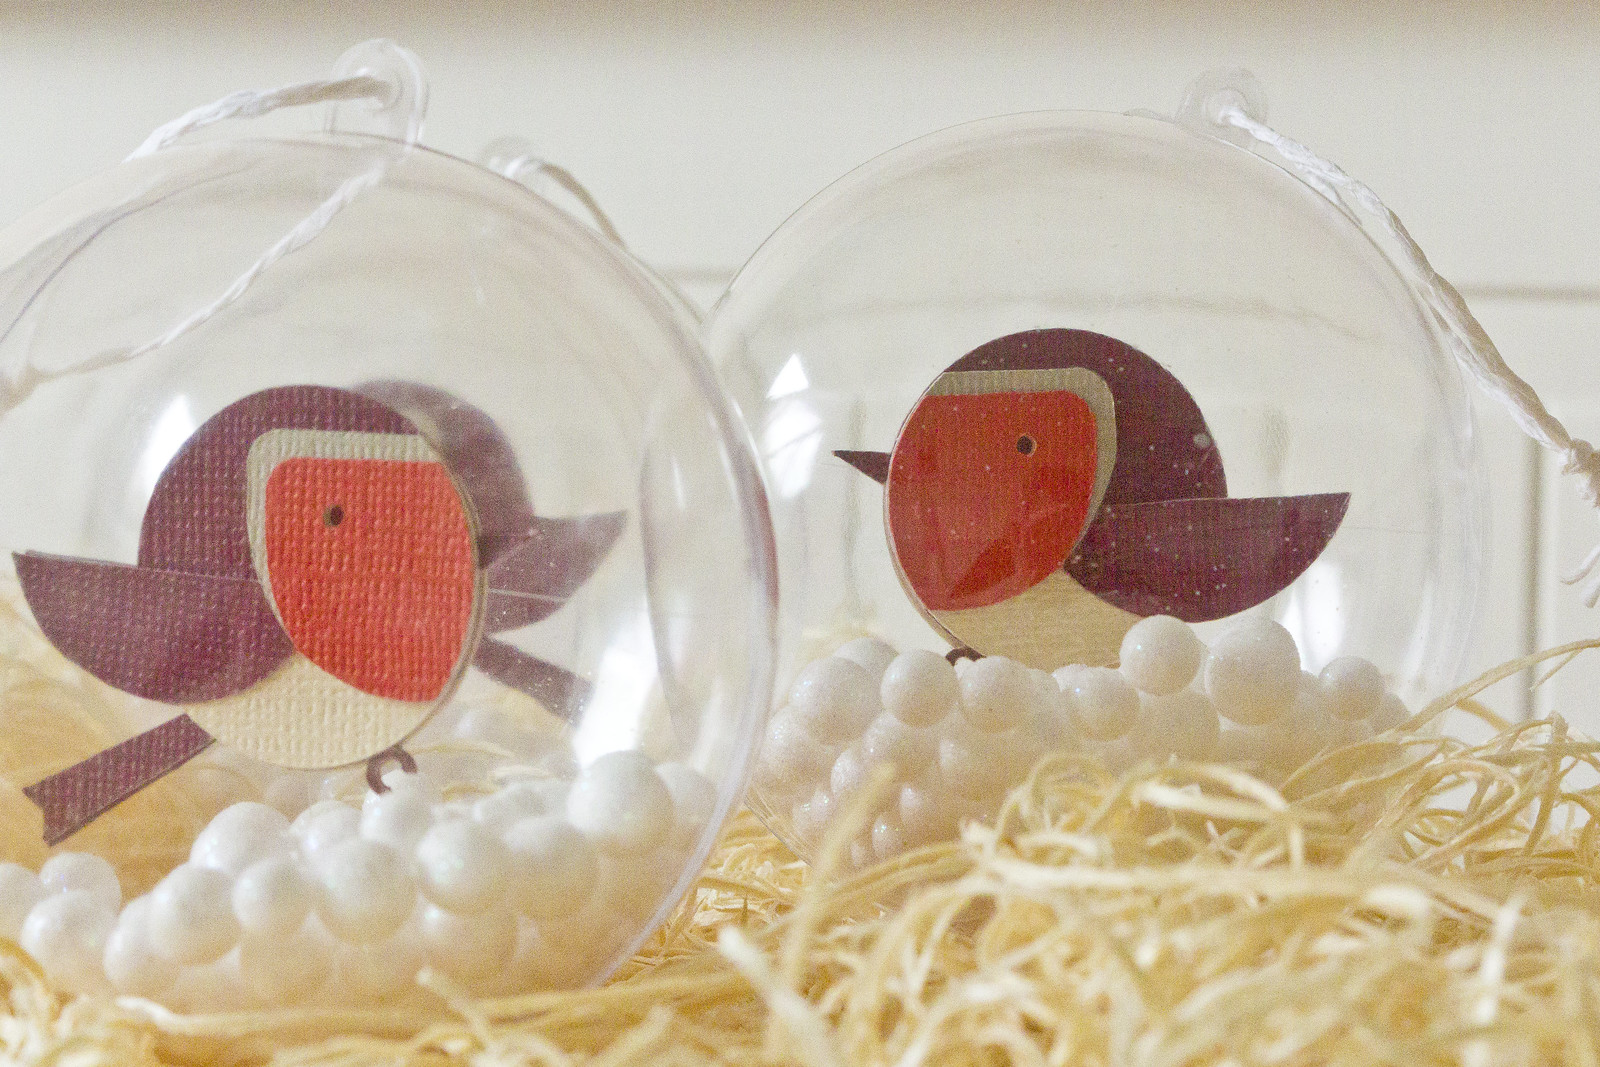 clear plastic baubles with robins. Fill your own baubles from poundland